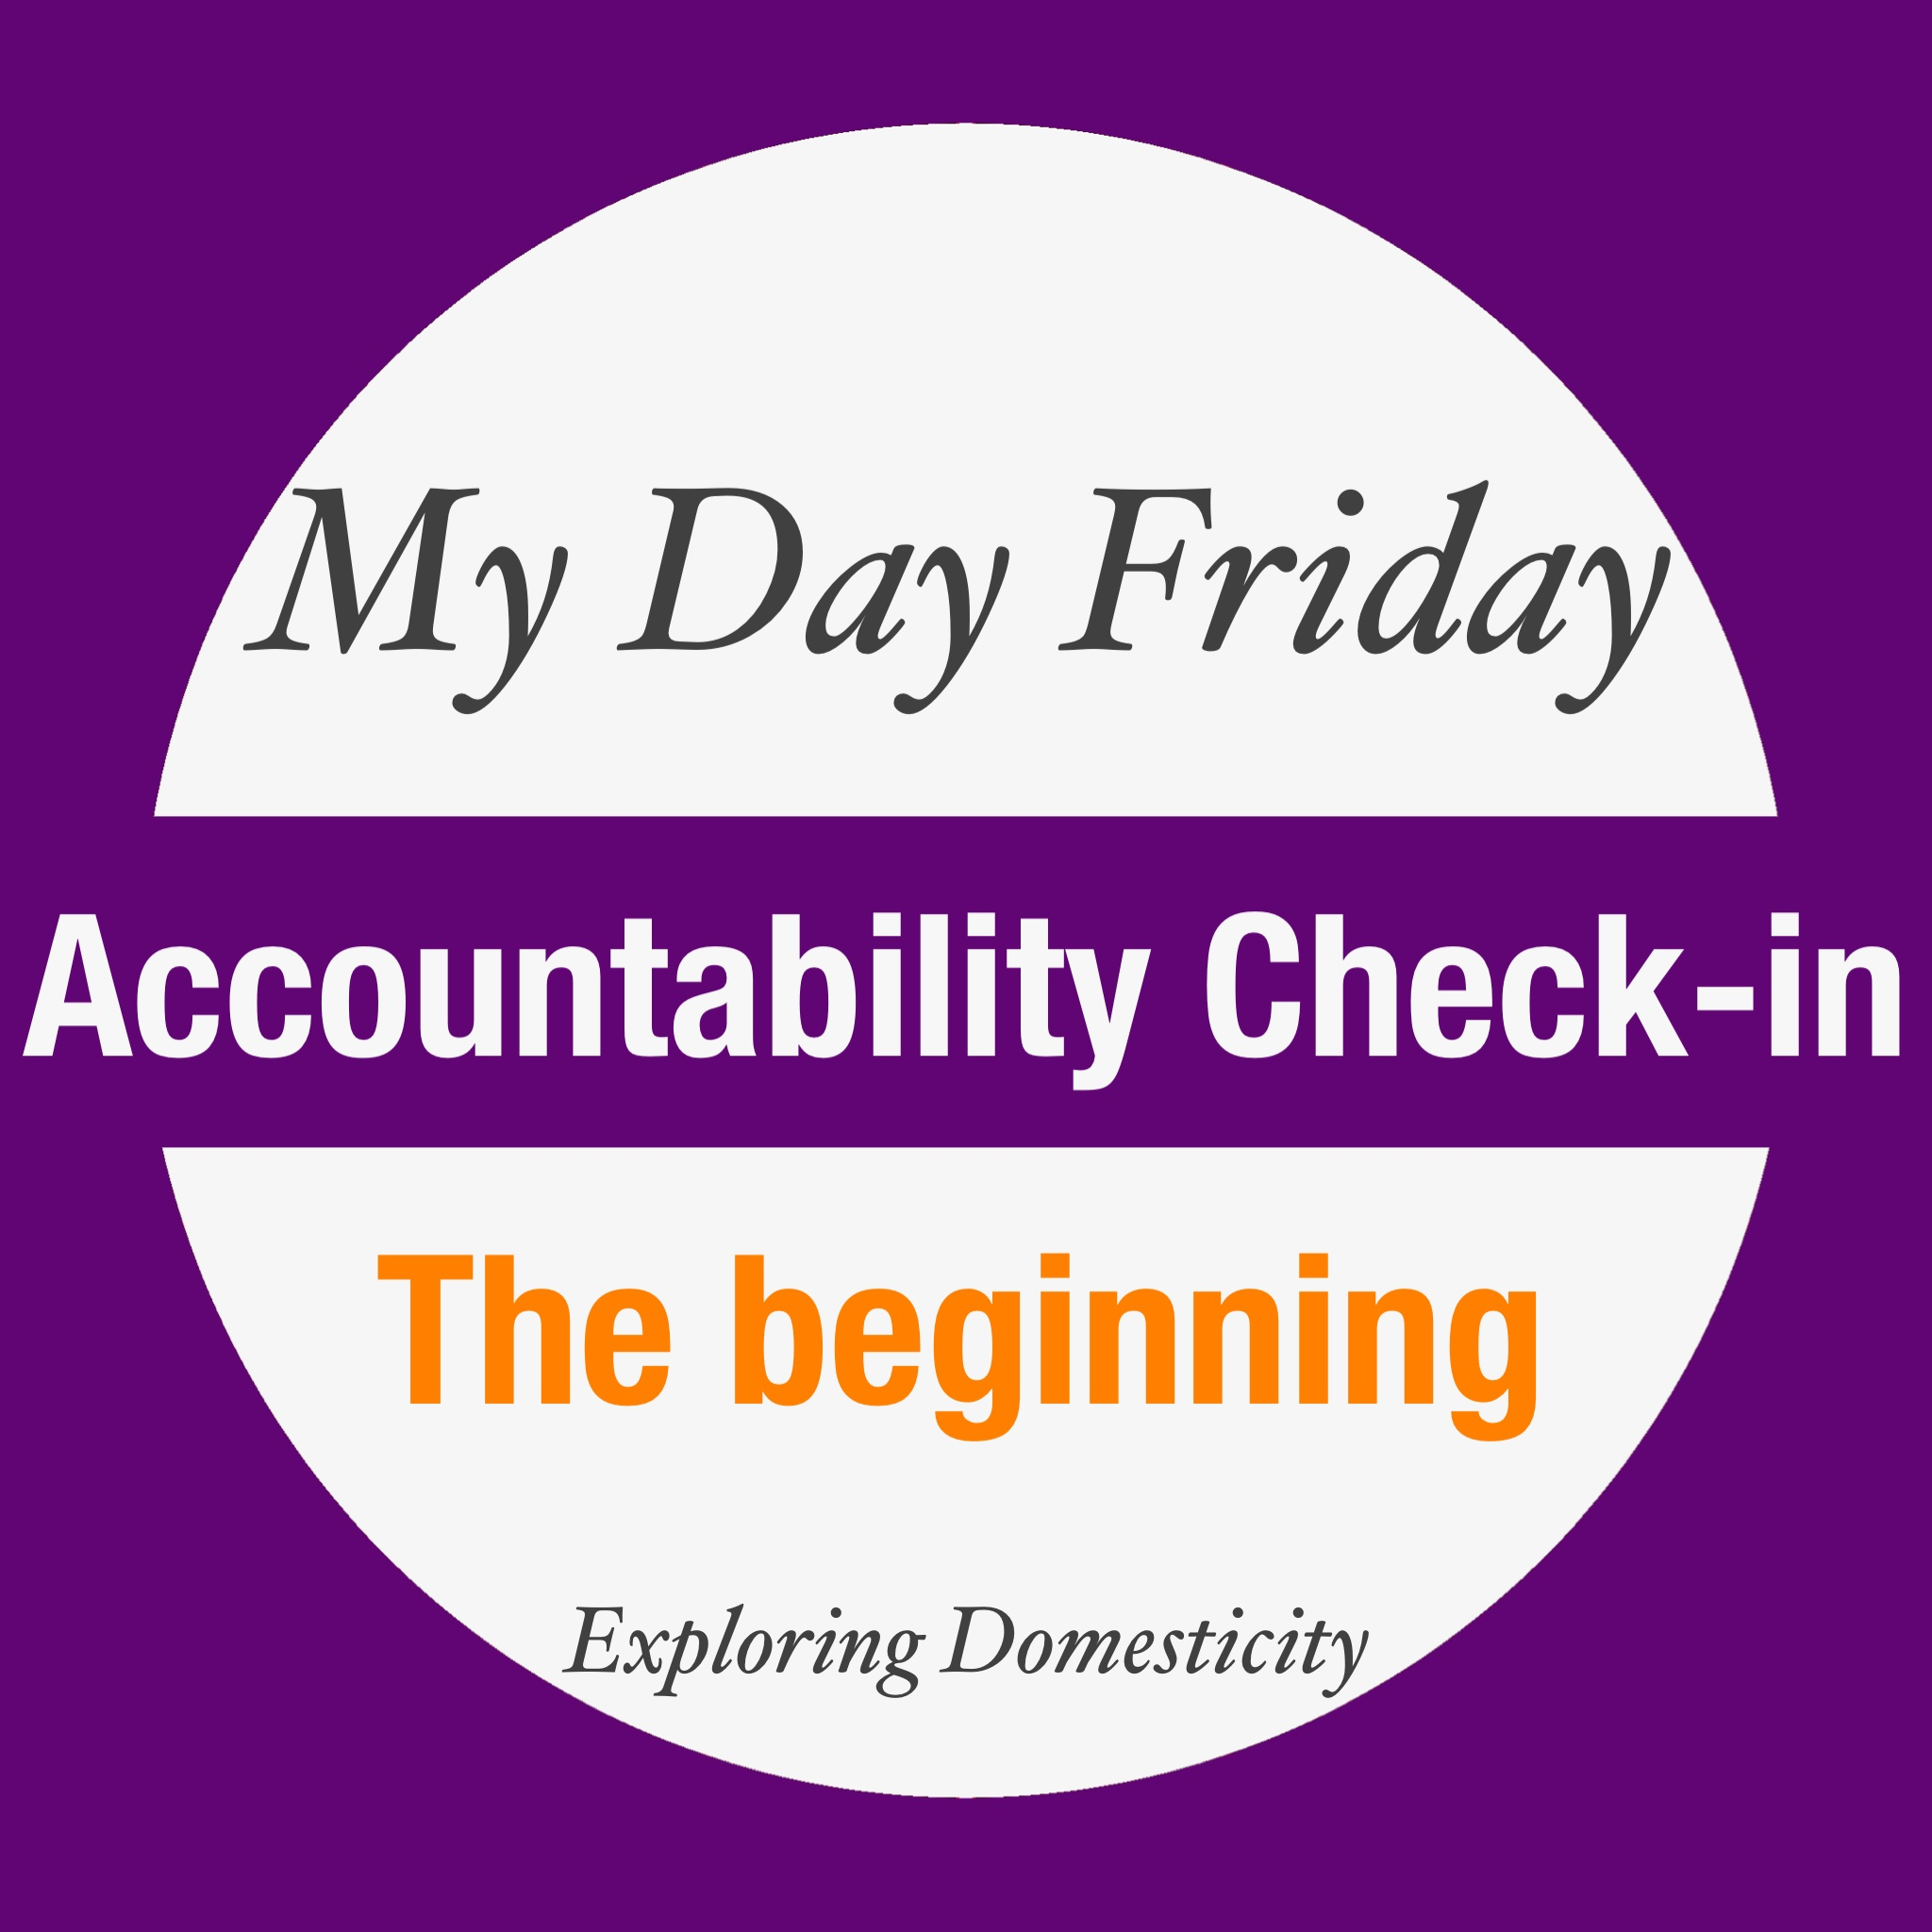 My Day Friday Accountability Check-in: the beginning